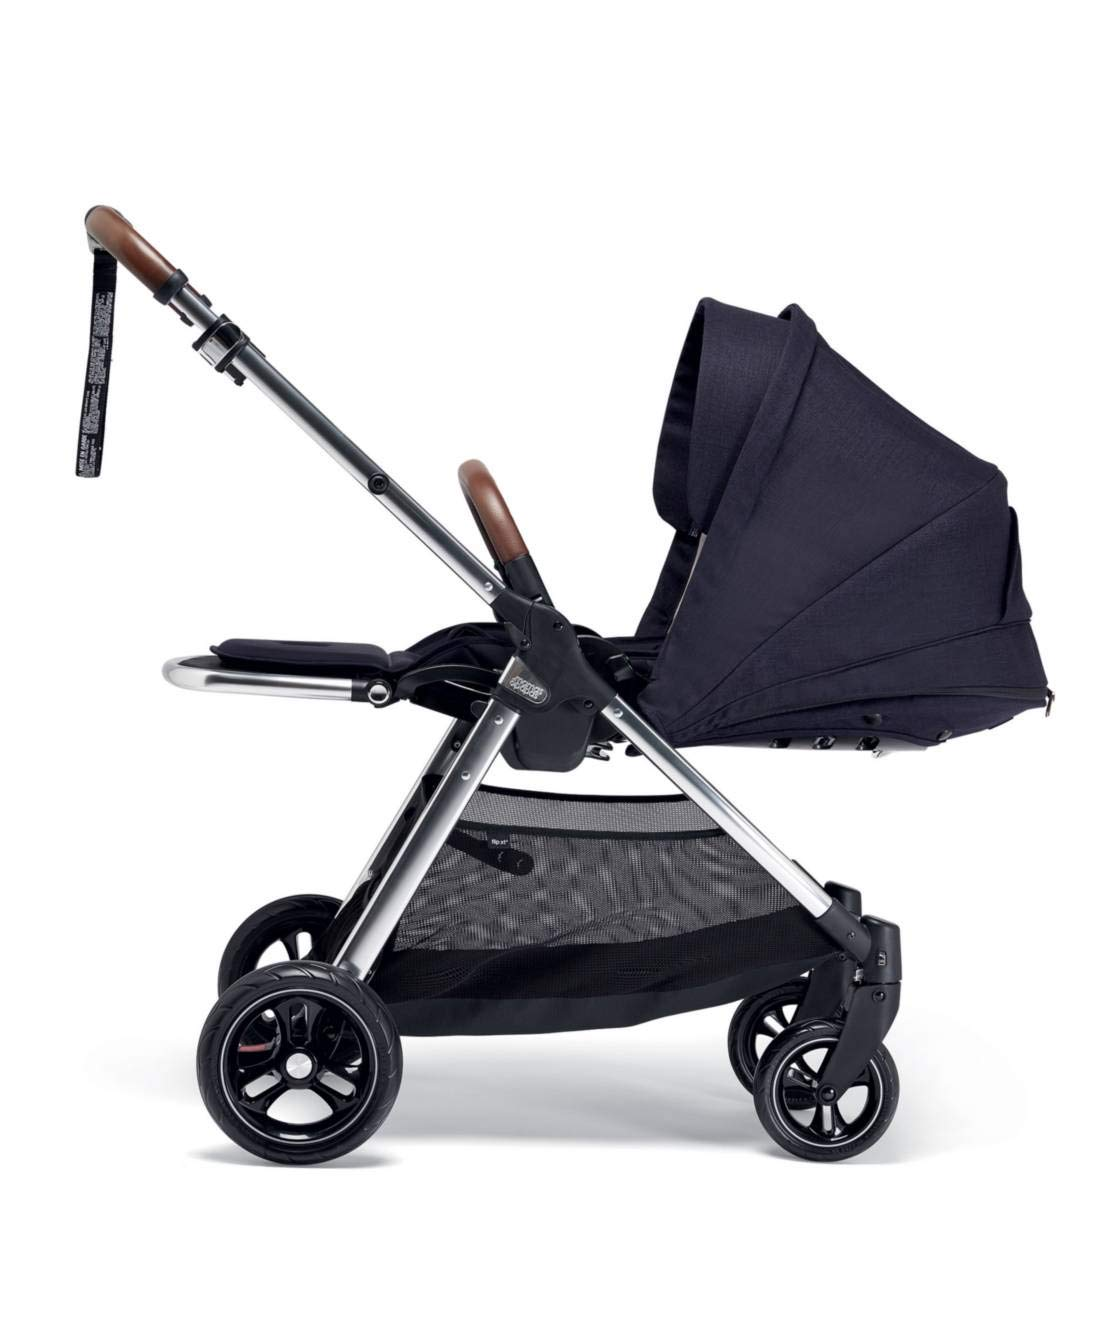 Mamas & Papas Flip XT3 Pushchair - Dark Navy Mamas & Papas PUSHCHAIR - Our lightweight Flip XT3 pushchair is perfect for handling busy streets FOLDABLE - This pushchair can be stored away quick and compact with the easy one handed fold FEATURES - The lie-flat position supports natural, healthy sleep while the UPF 50+ large hood & air vent provides cooling protection from the sun 3